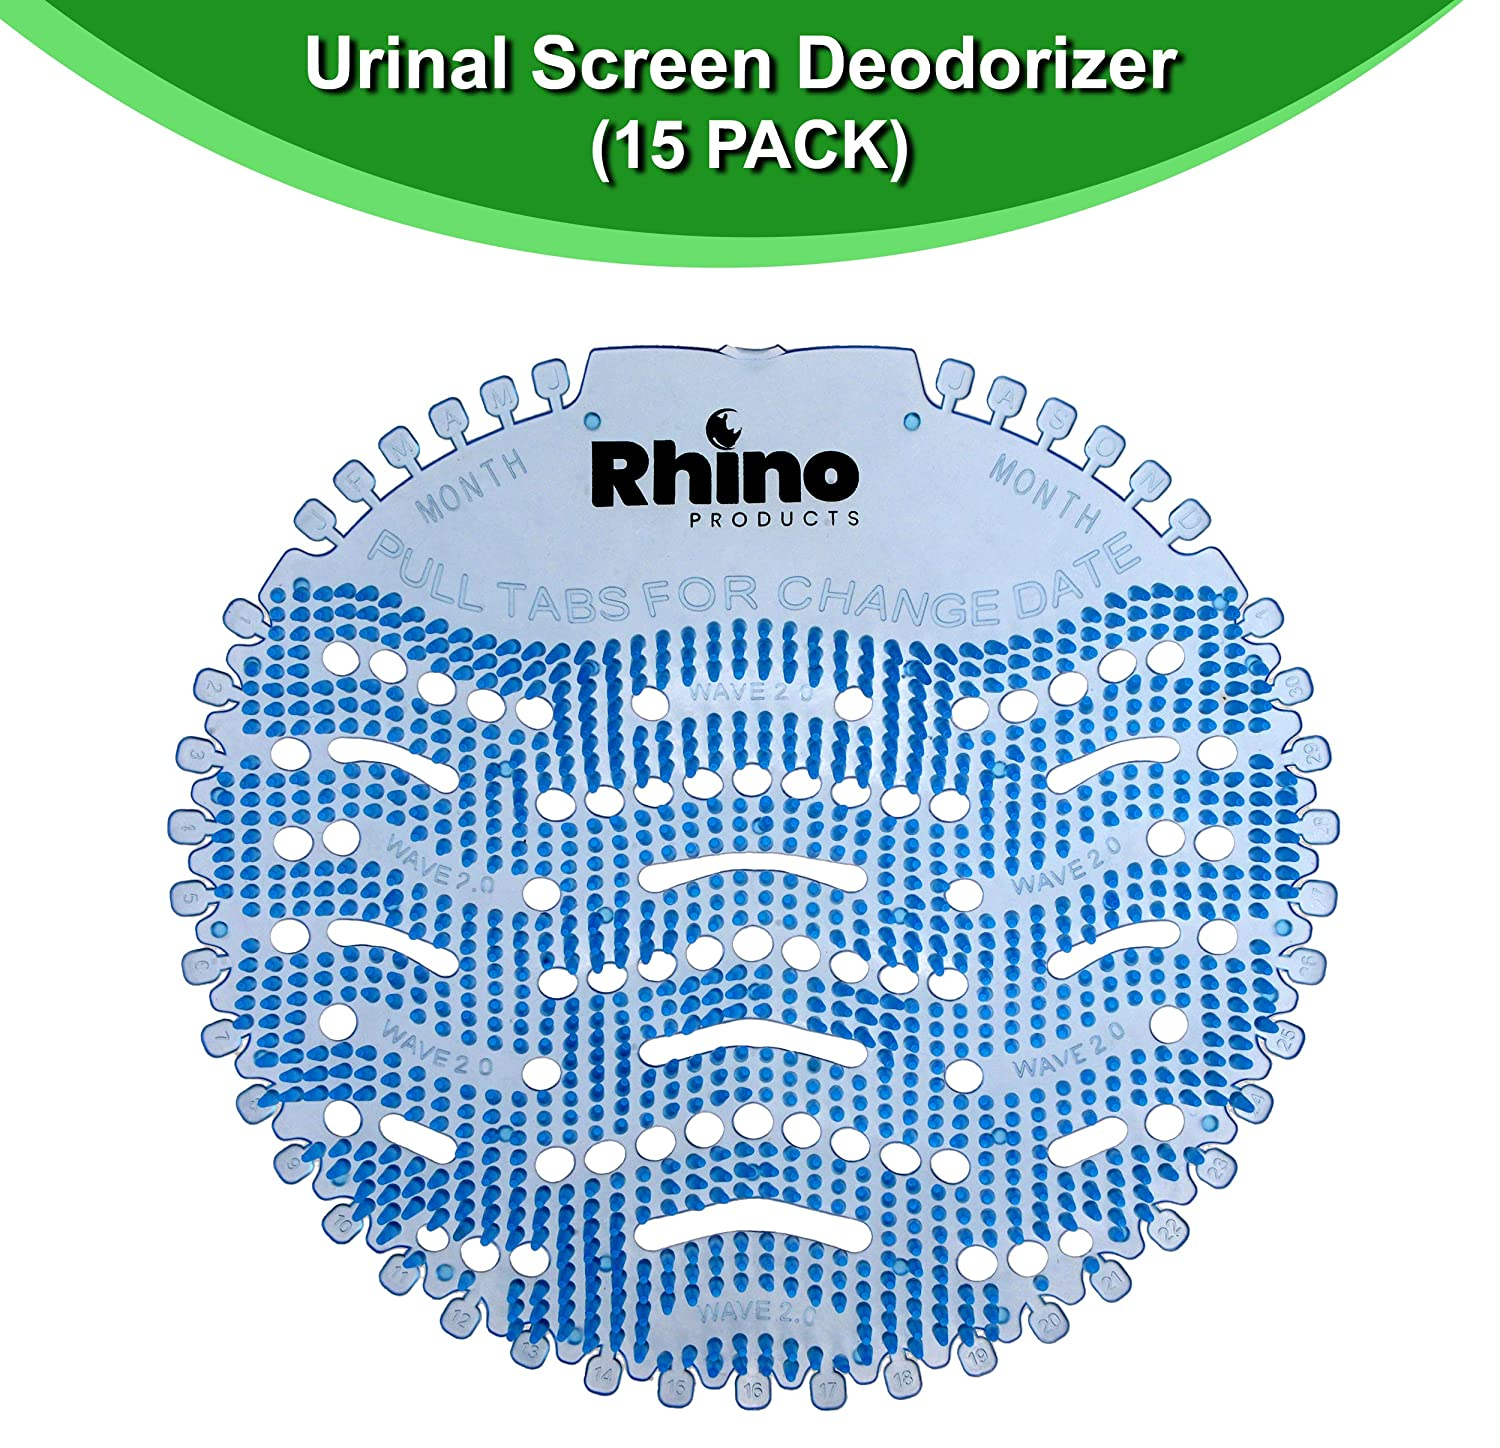 Rhino Products Urinal Screens Deodorizer - 15 Pack - Anti-Splash Urinal Screen and Odor Neutralizer with Fresh Lemon Scent - Ideal for Restrooms at Home, Offices, Schools, and Malls